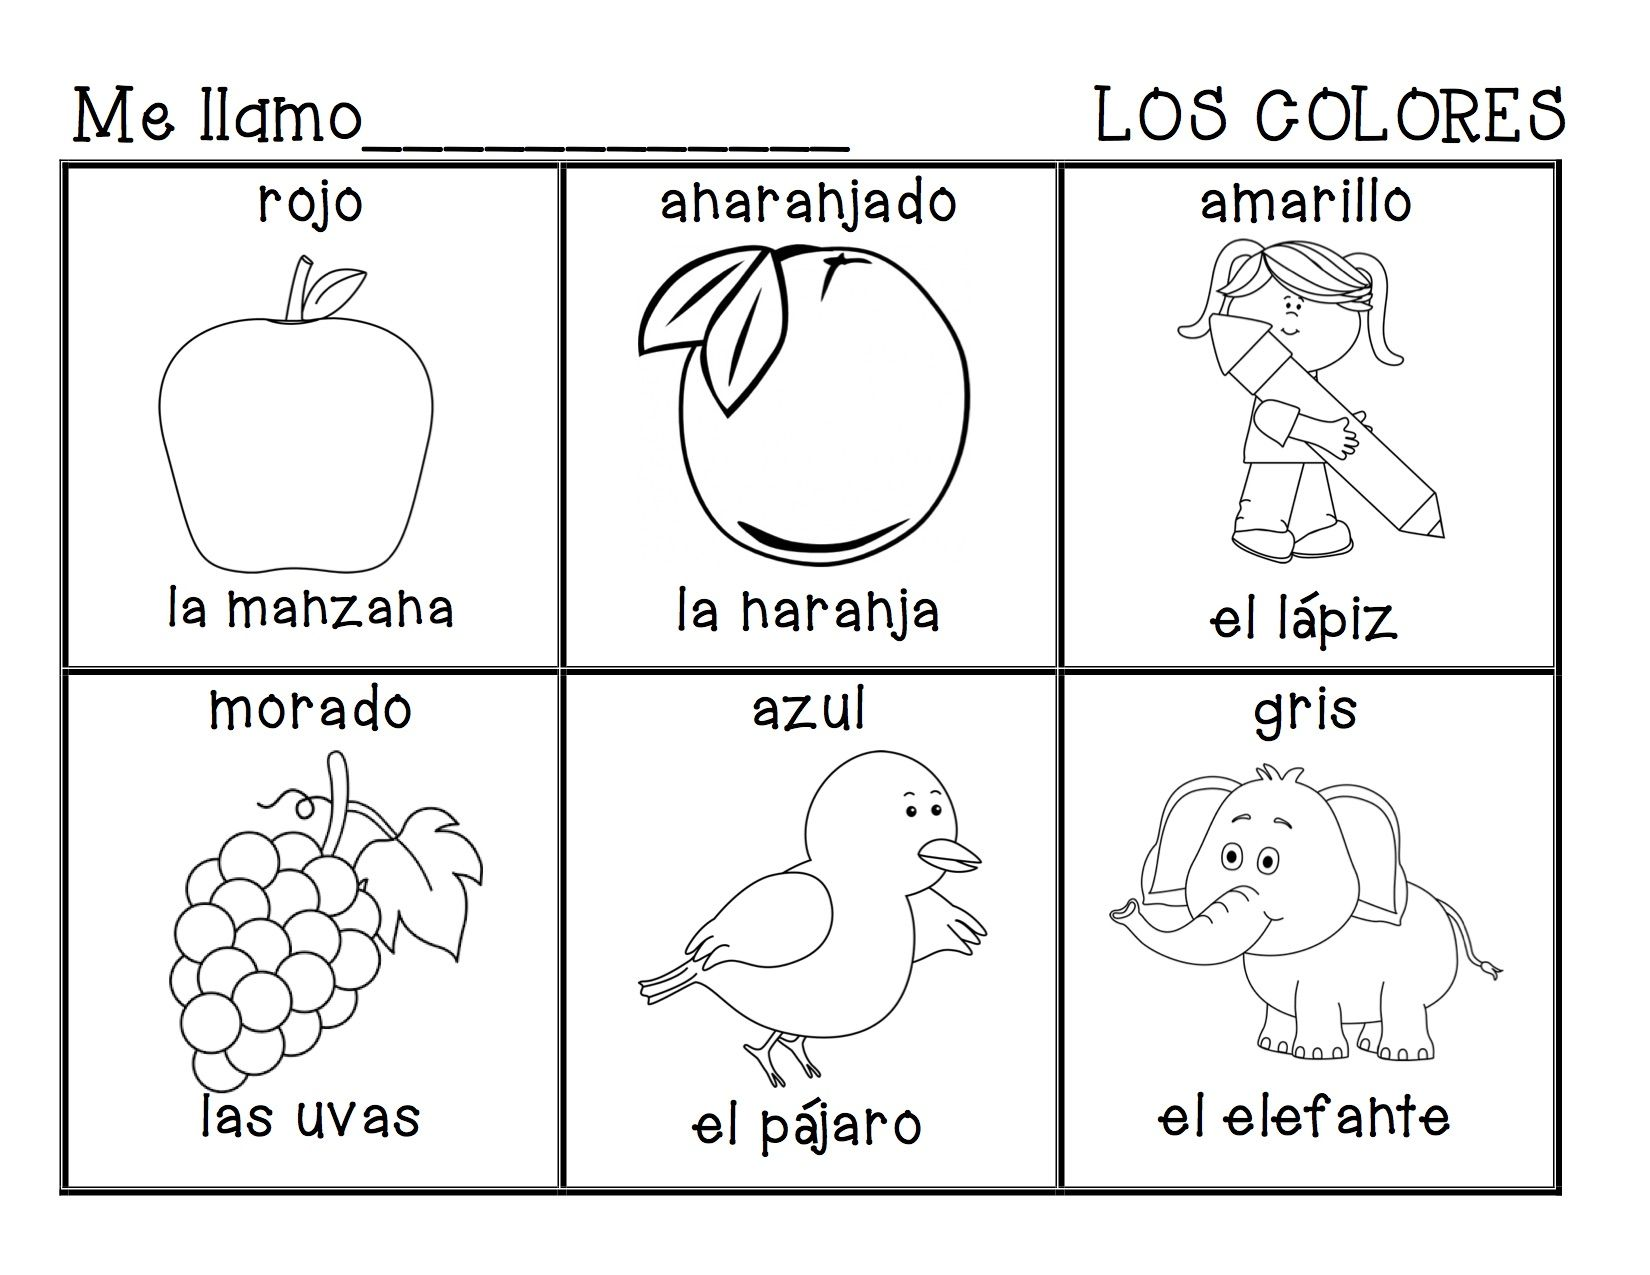 Spanish Coloring Sheet For A Paintbrush For Paco By Tracey Kyle Illustrated By Joshua Heinsz Spanish Lessons For Kids Elementary Spanish Preschool Spanish